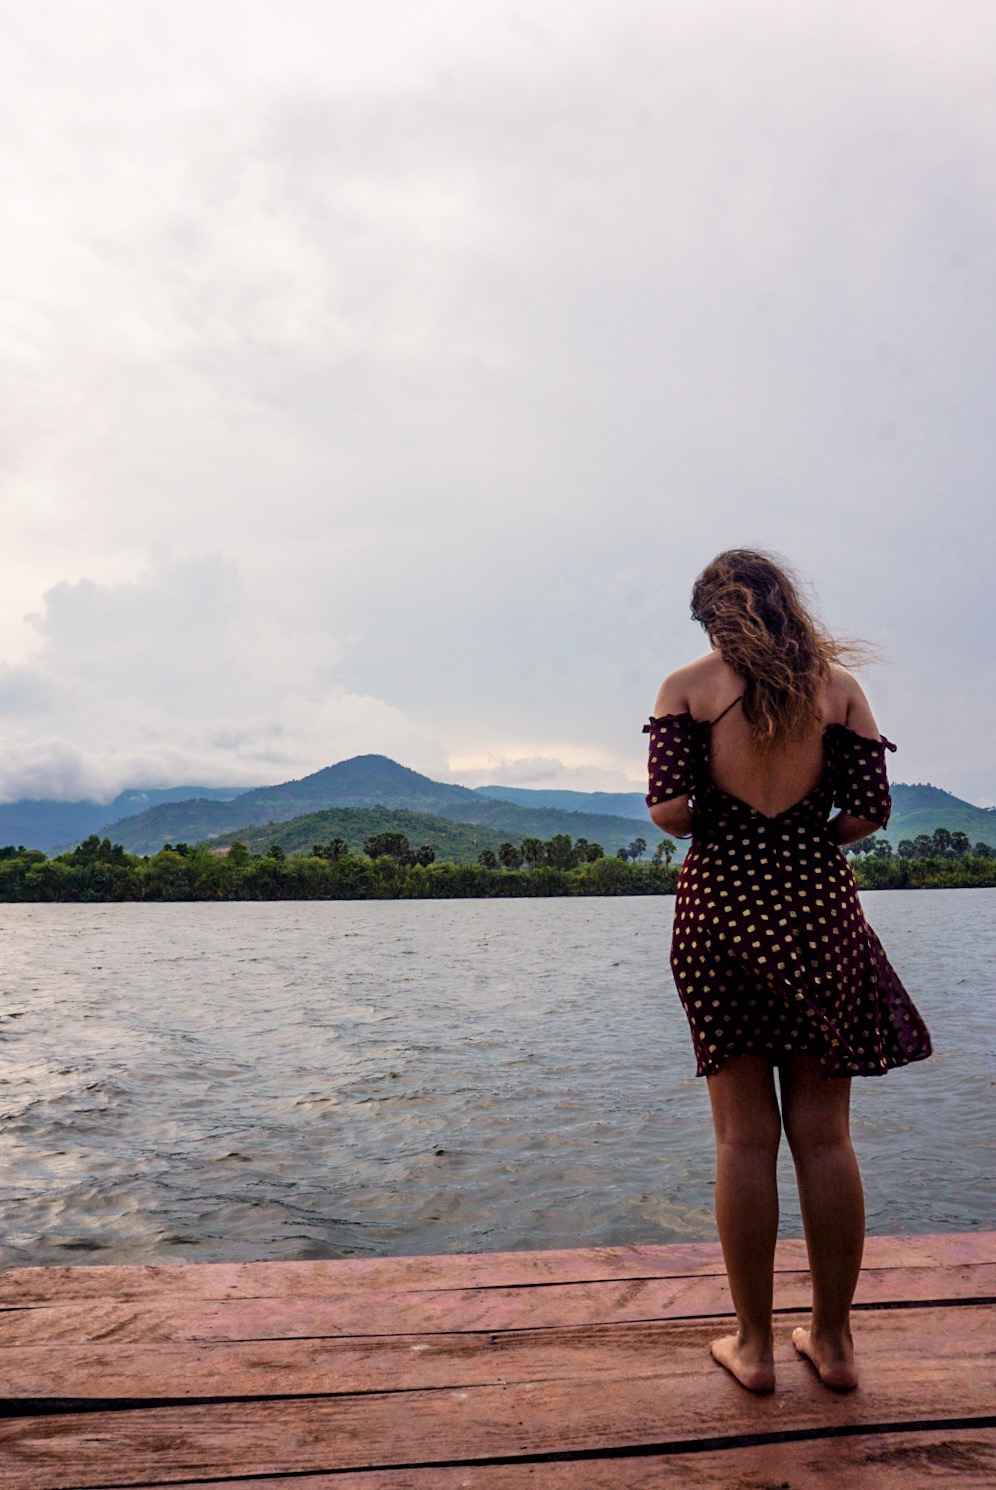 By the Kampot River